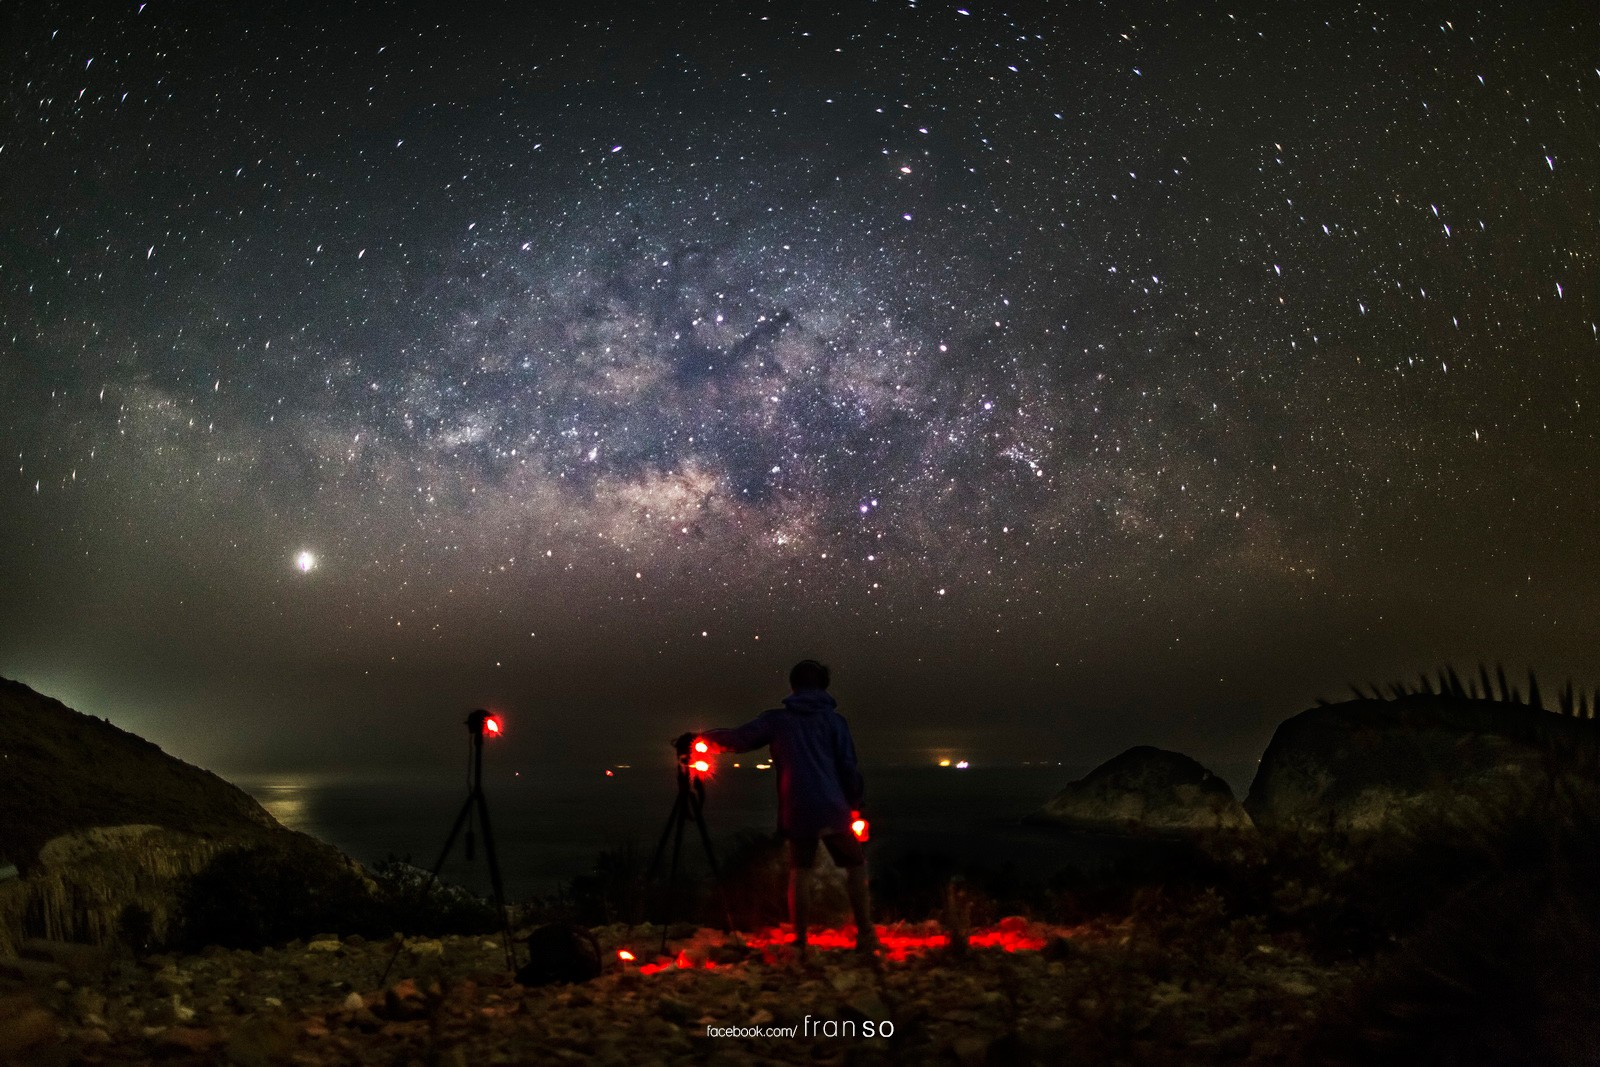 Starscape and Milkyway | Hong Kong | Summer in Winter  | Summer Milkyway at Winter season